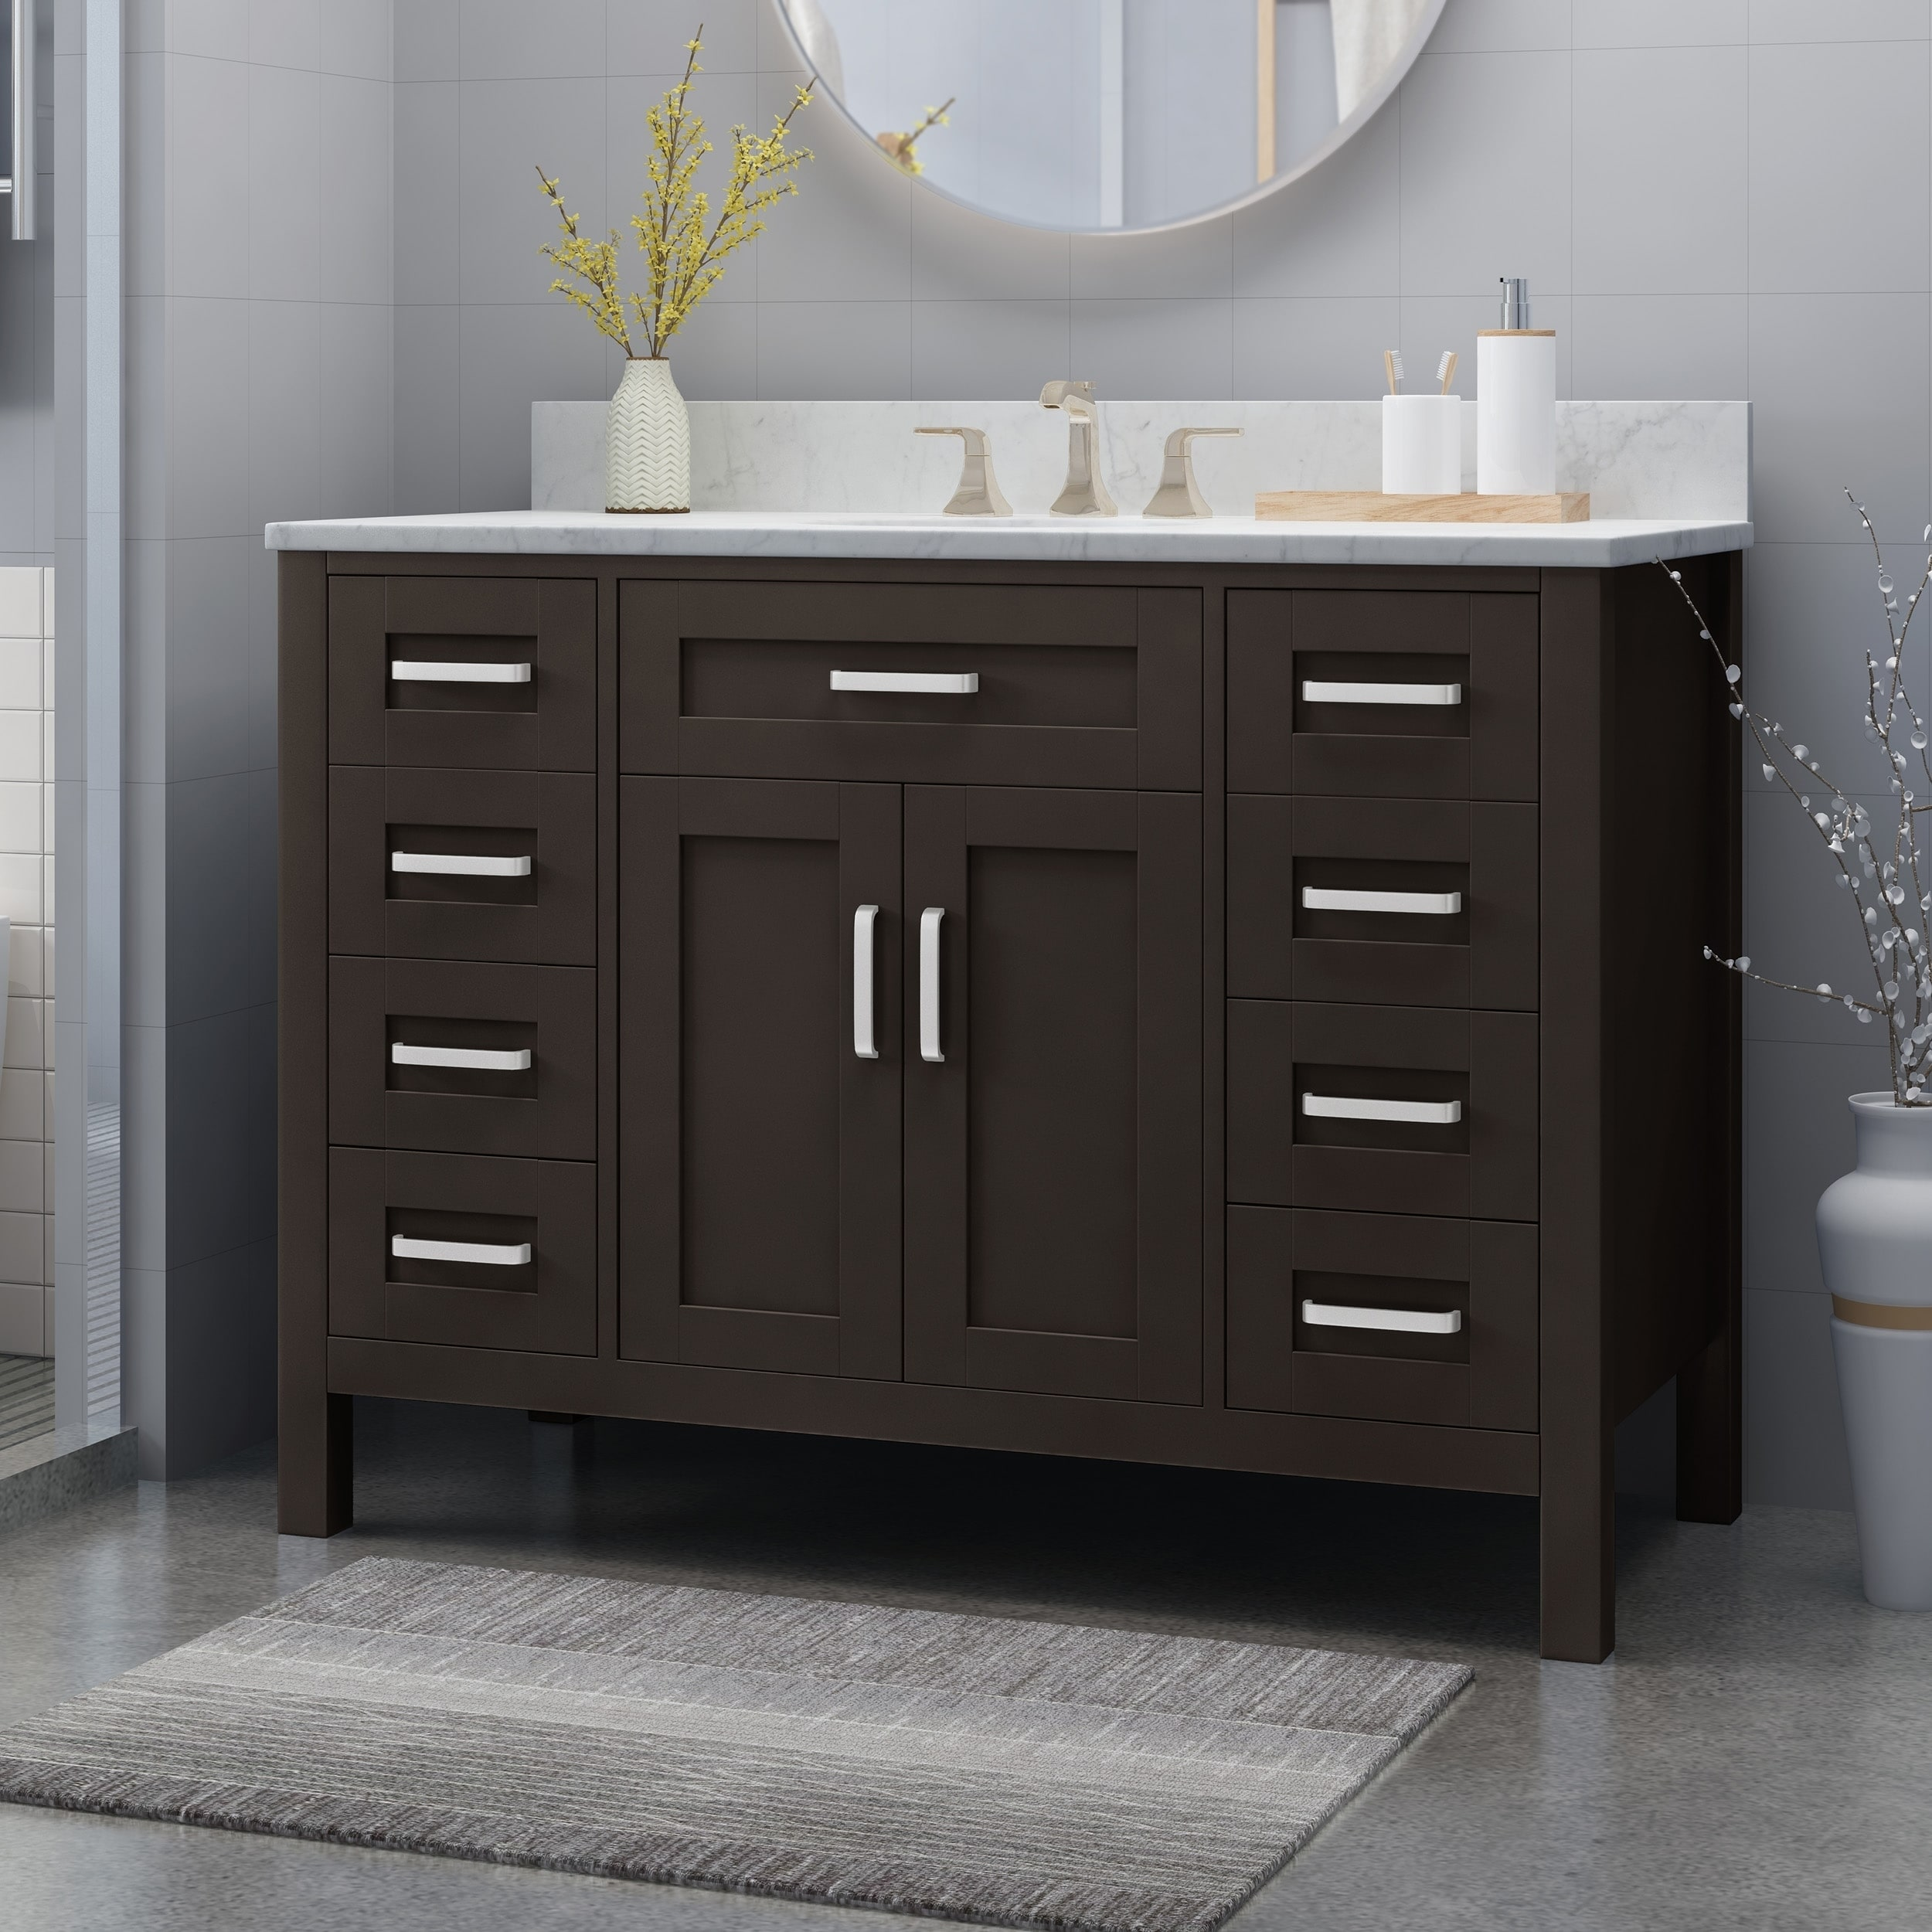 Wood Single Sink Bathroom Vanity